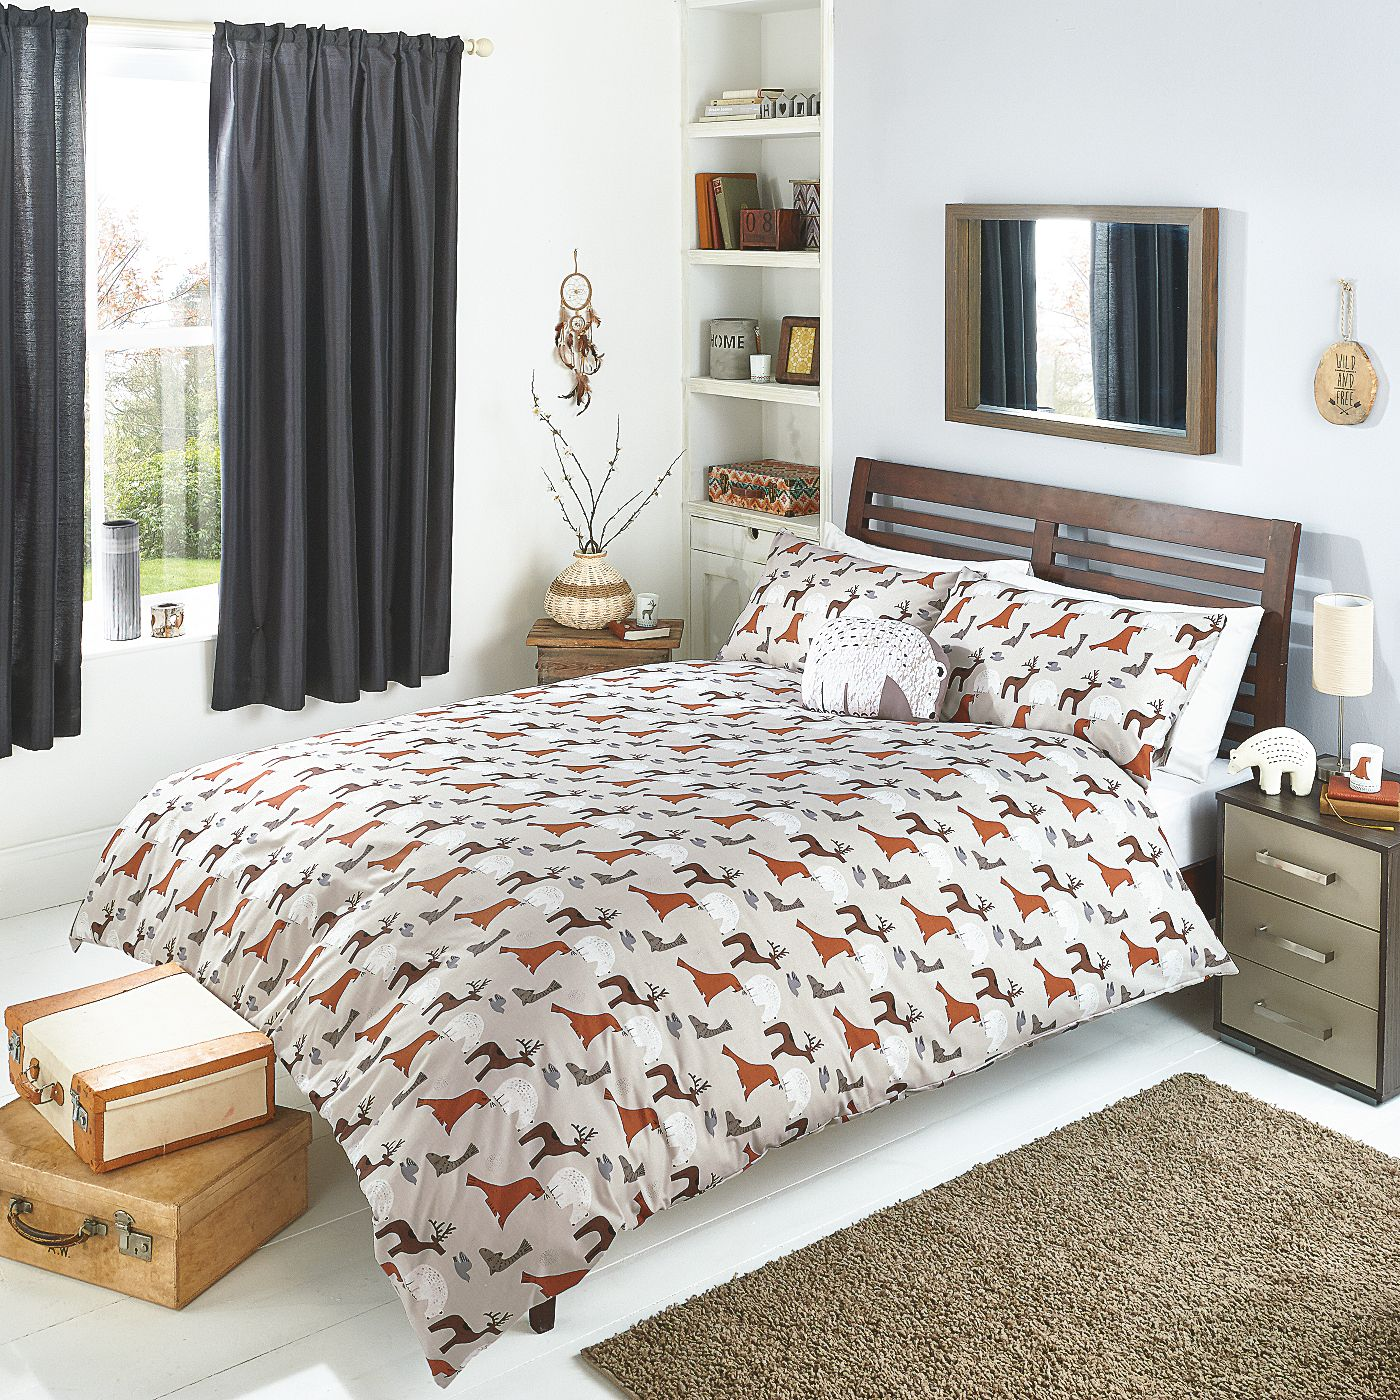 George Home Tundra Animals Duvet Bedding ASDA direct